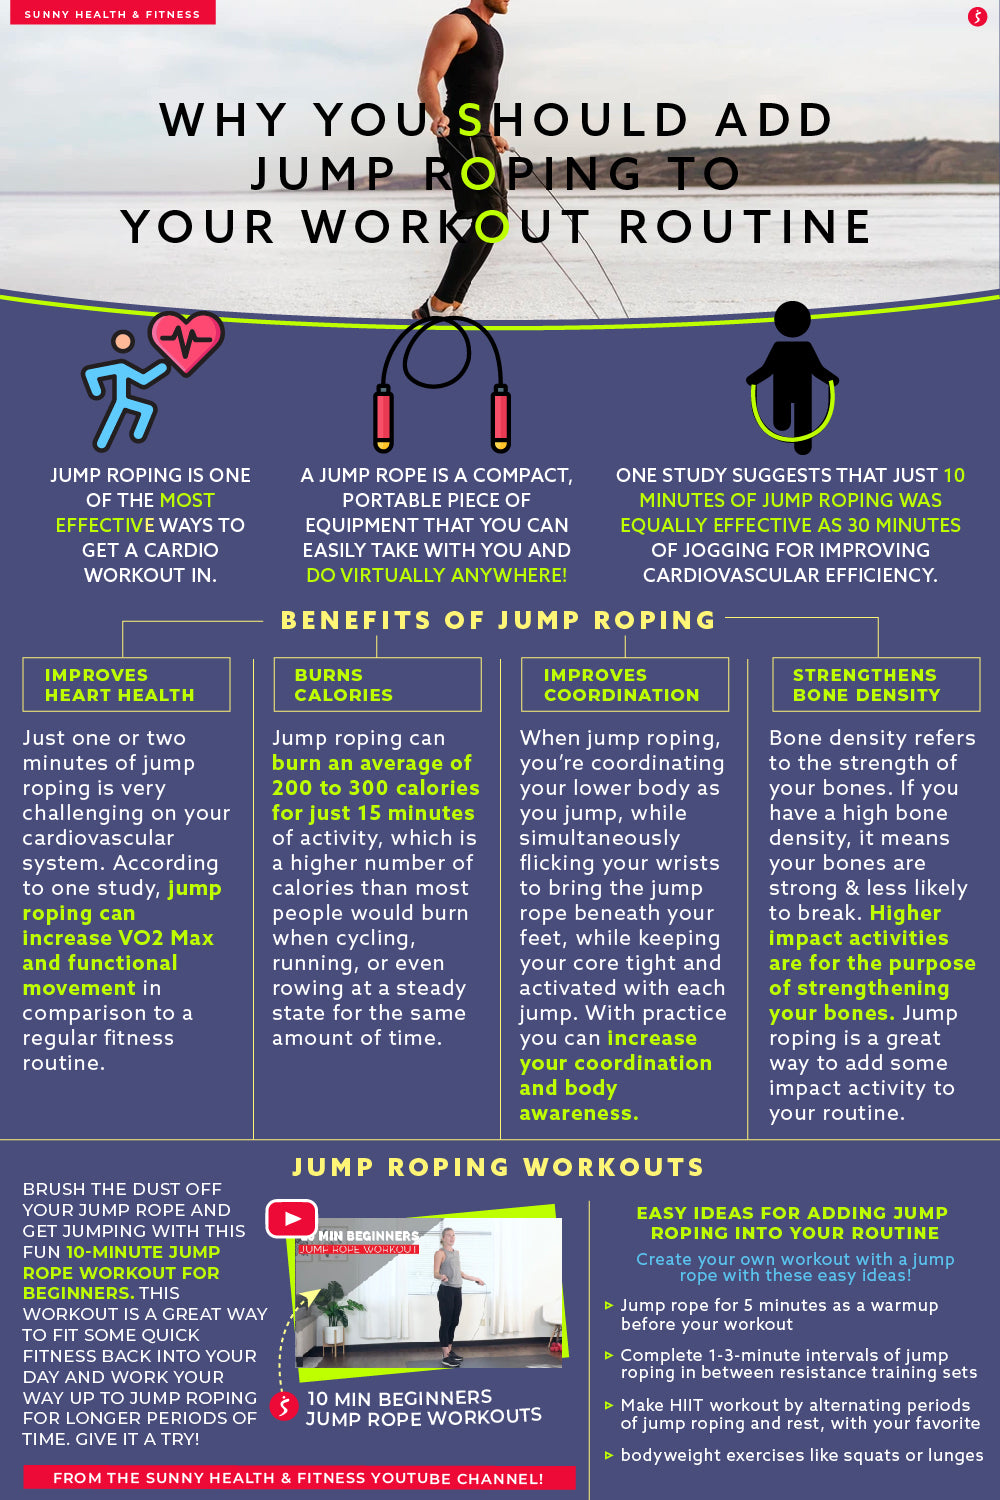 Why You Should Add Jump Roping to Your Workout Routine Infographic